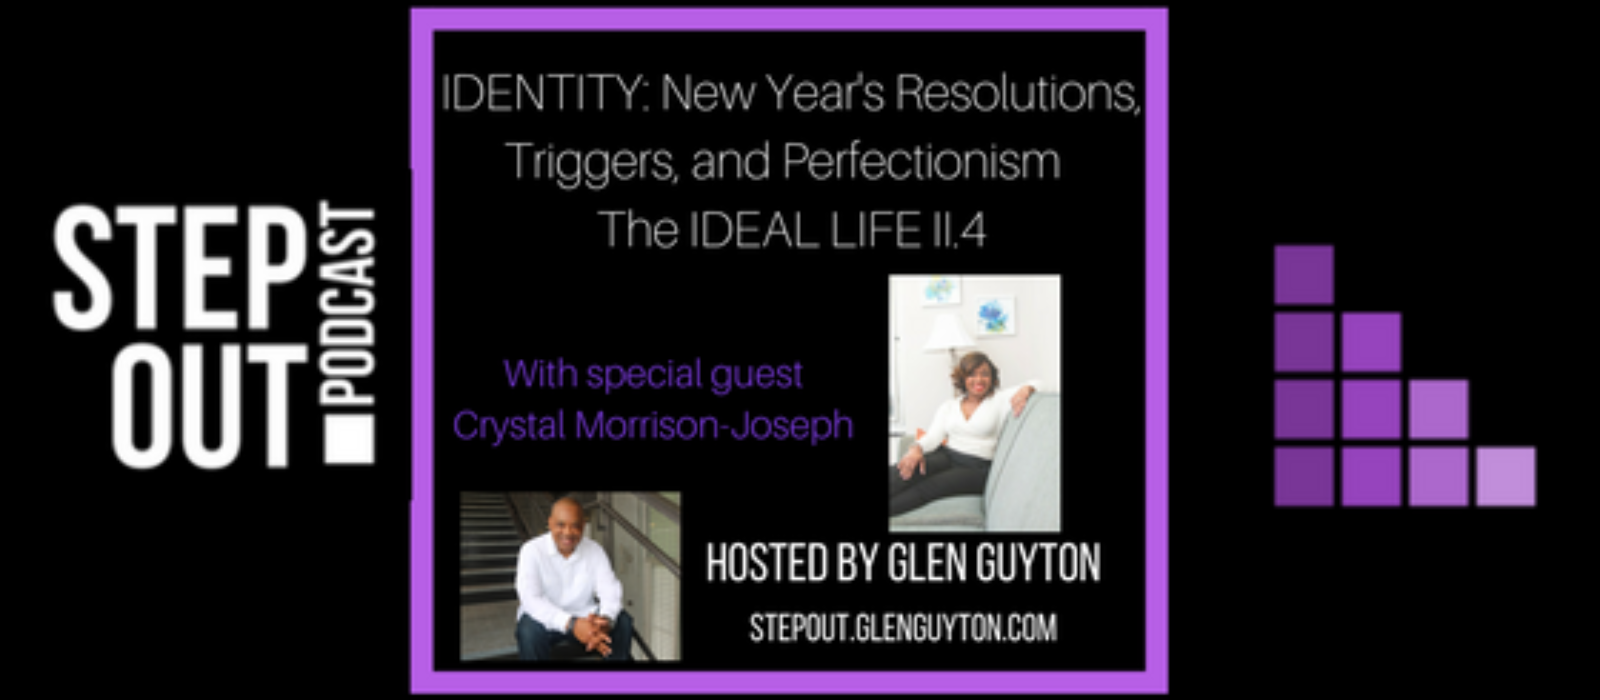 Identity: New Year's Resolutions, Triggers, and Perfectionism in Living the IDEAL Life II.4